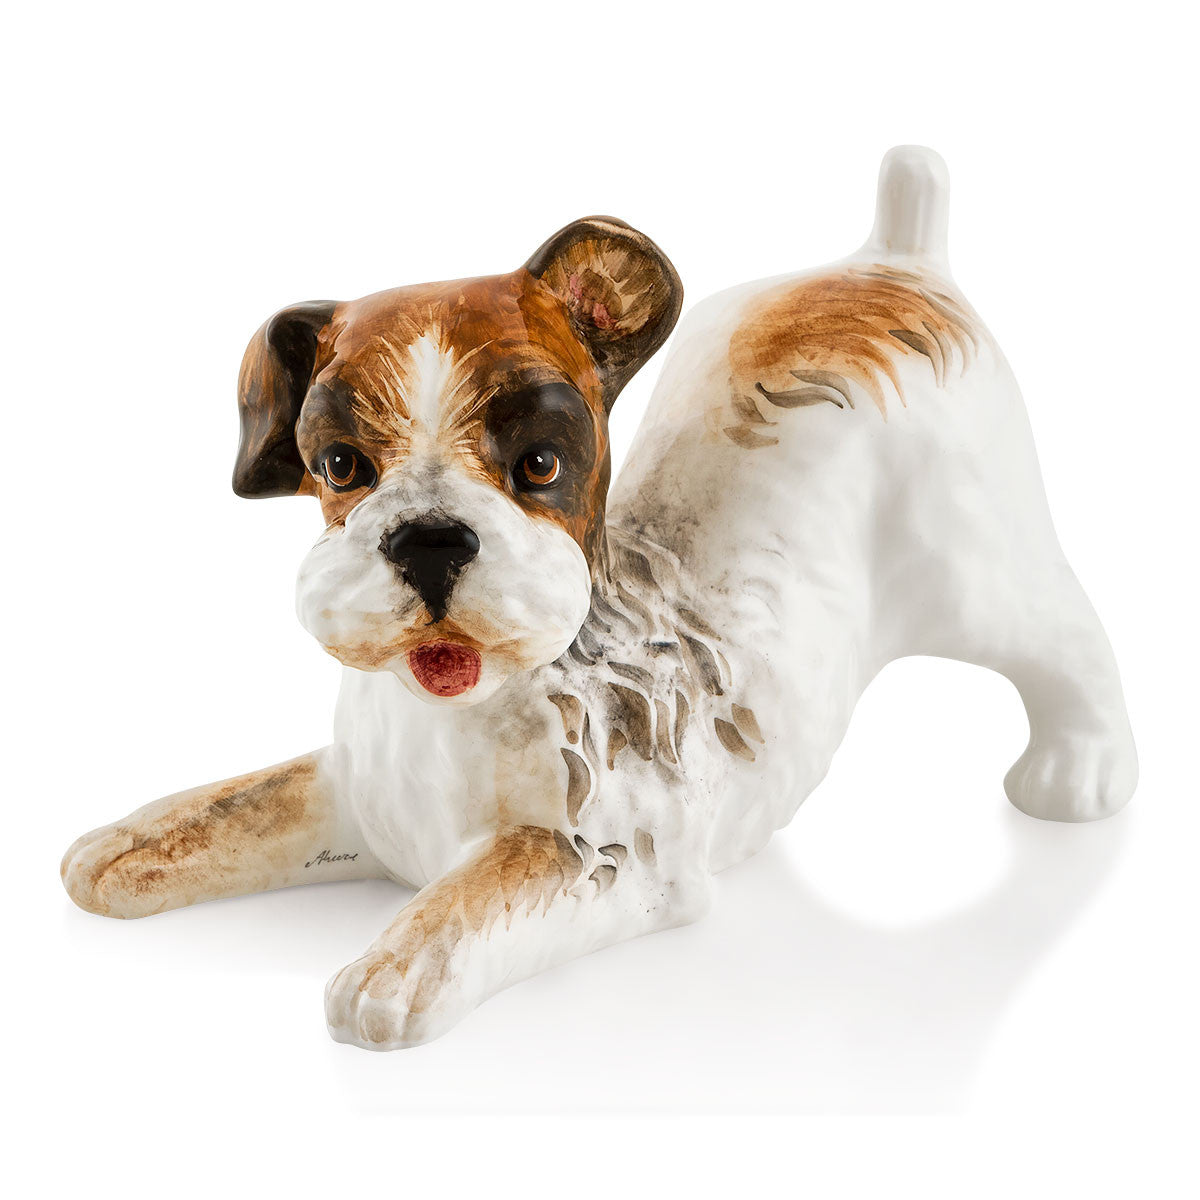 puppy terrier dog hand-painted ceramic porcelain  finished in natural color